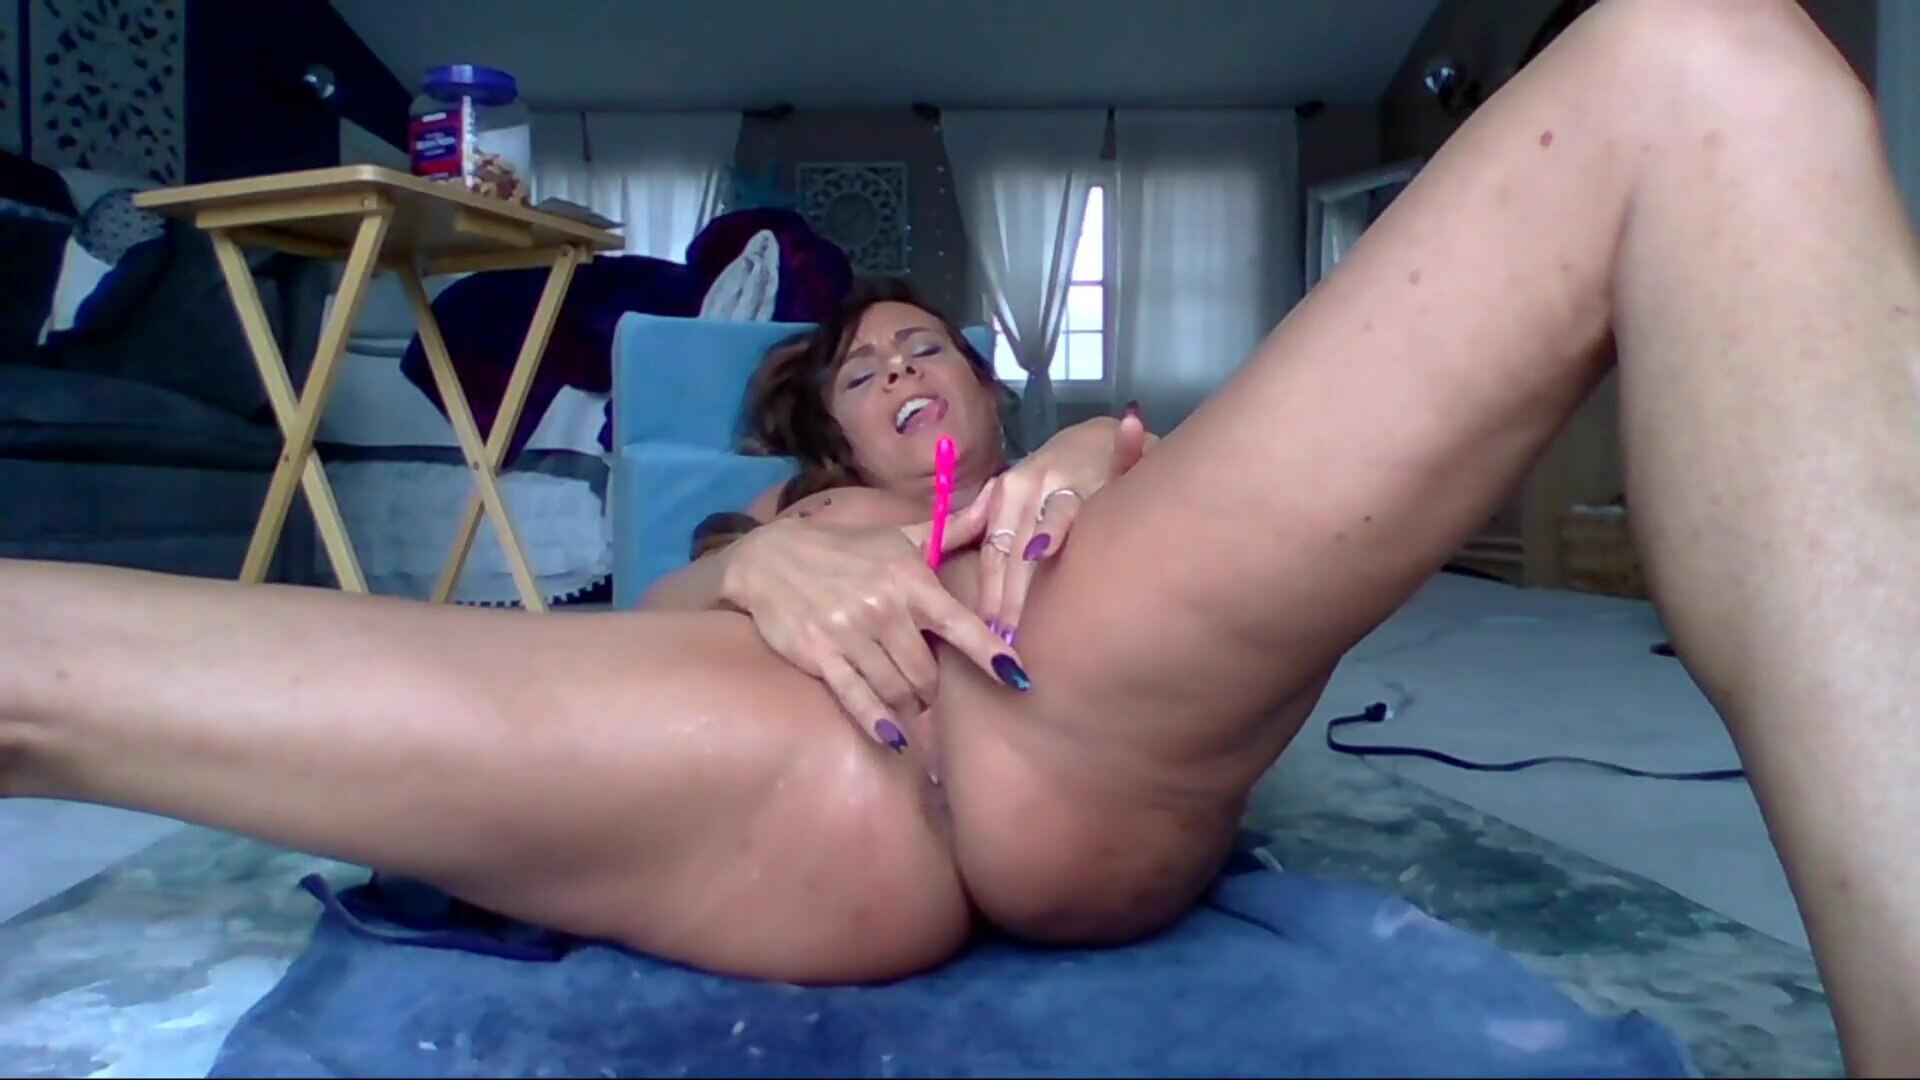 Squirting MILFs Are Waiting For Your Presence On Their Cams!